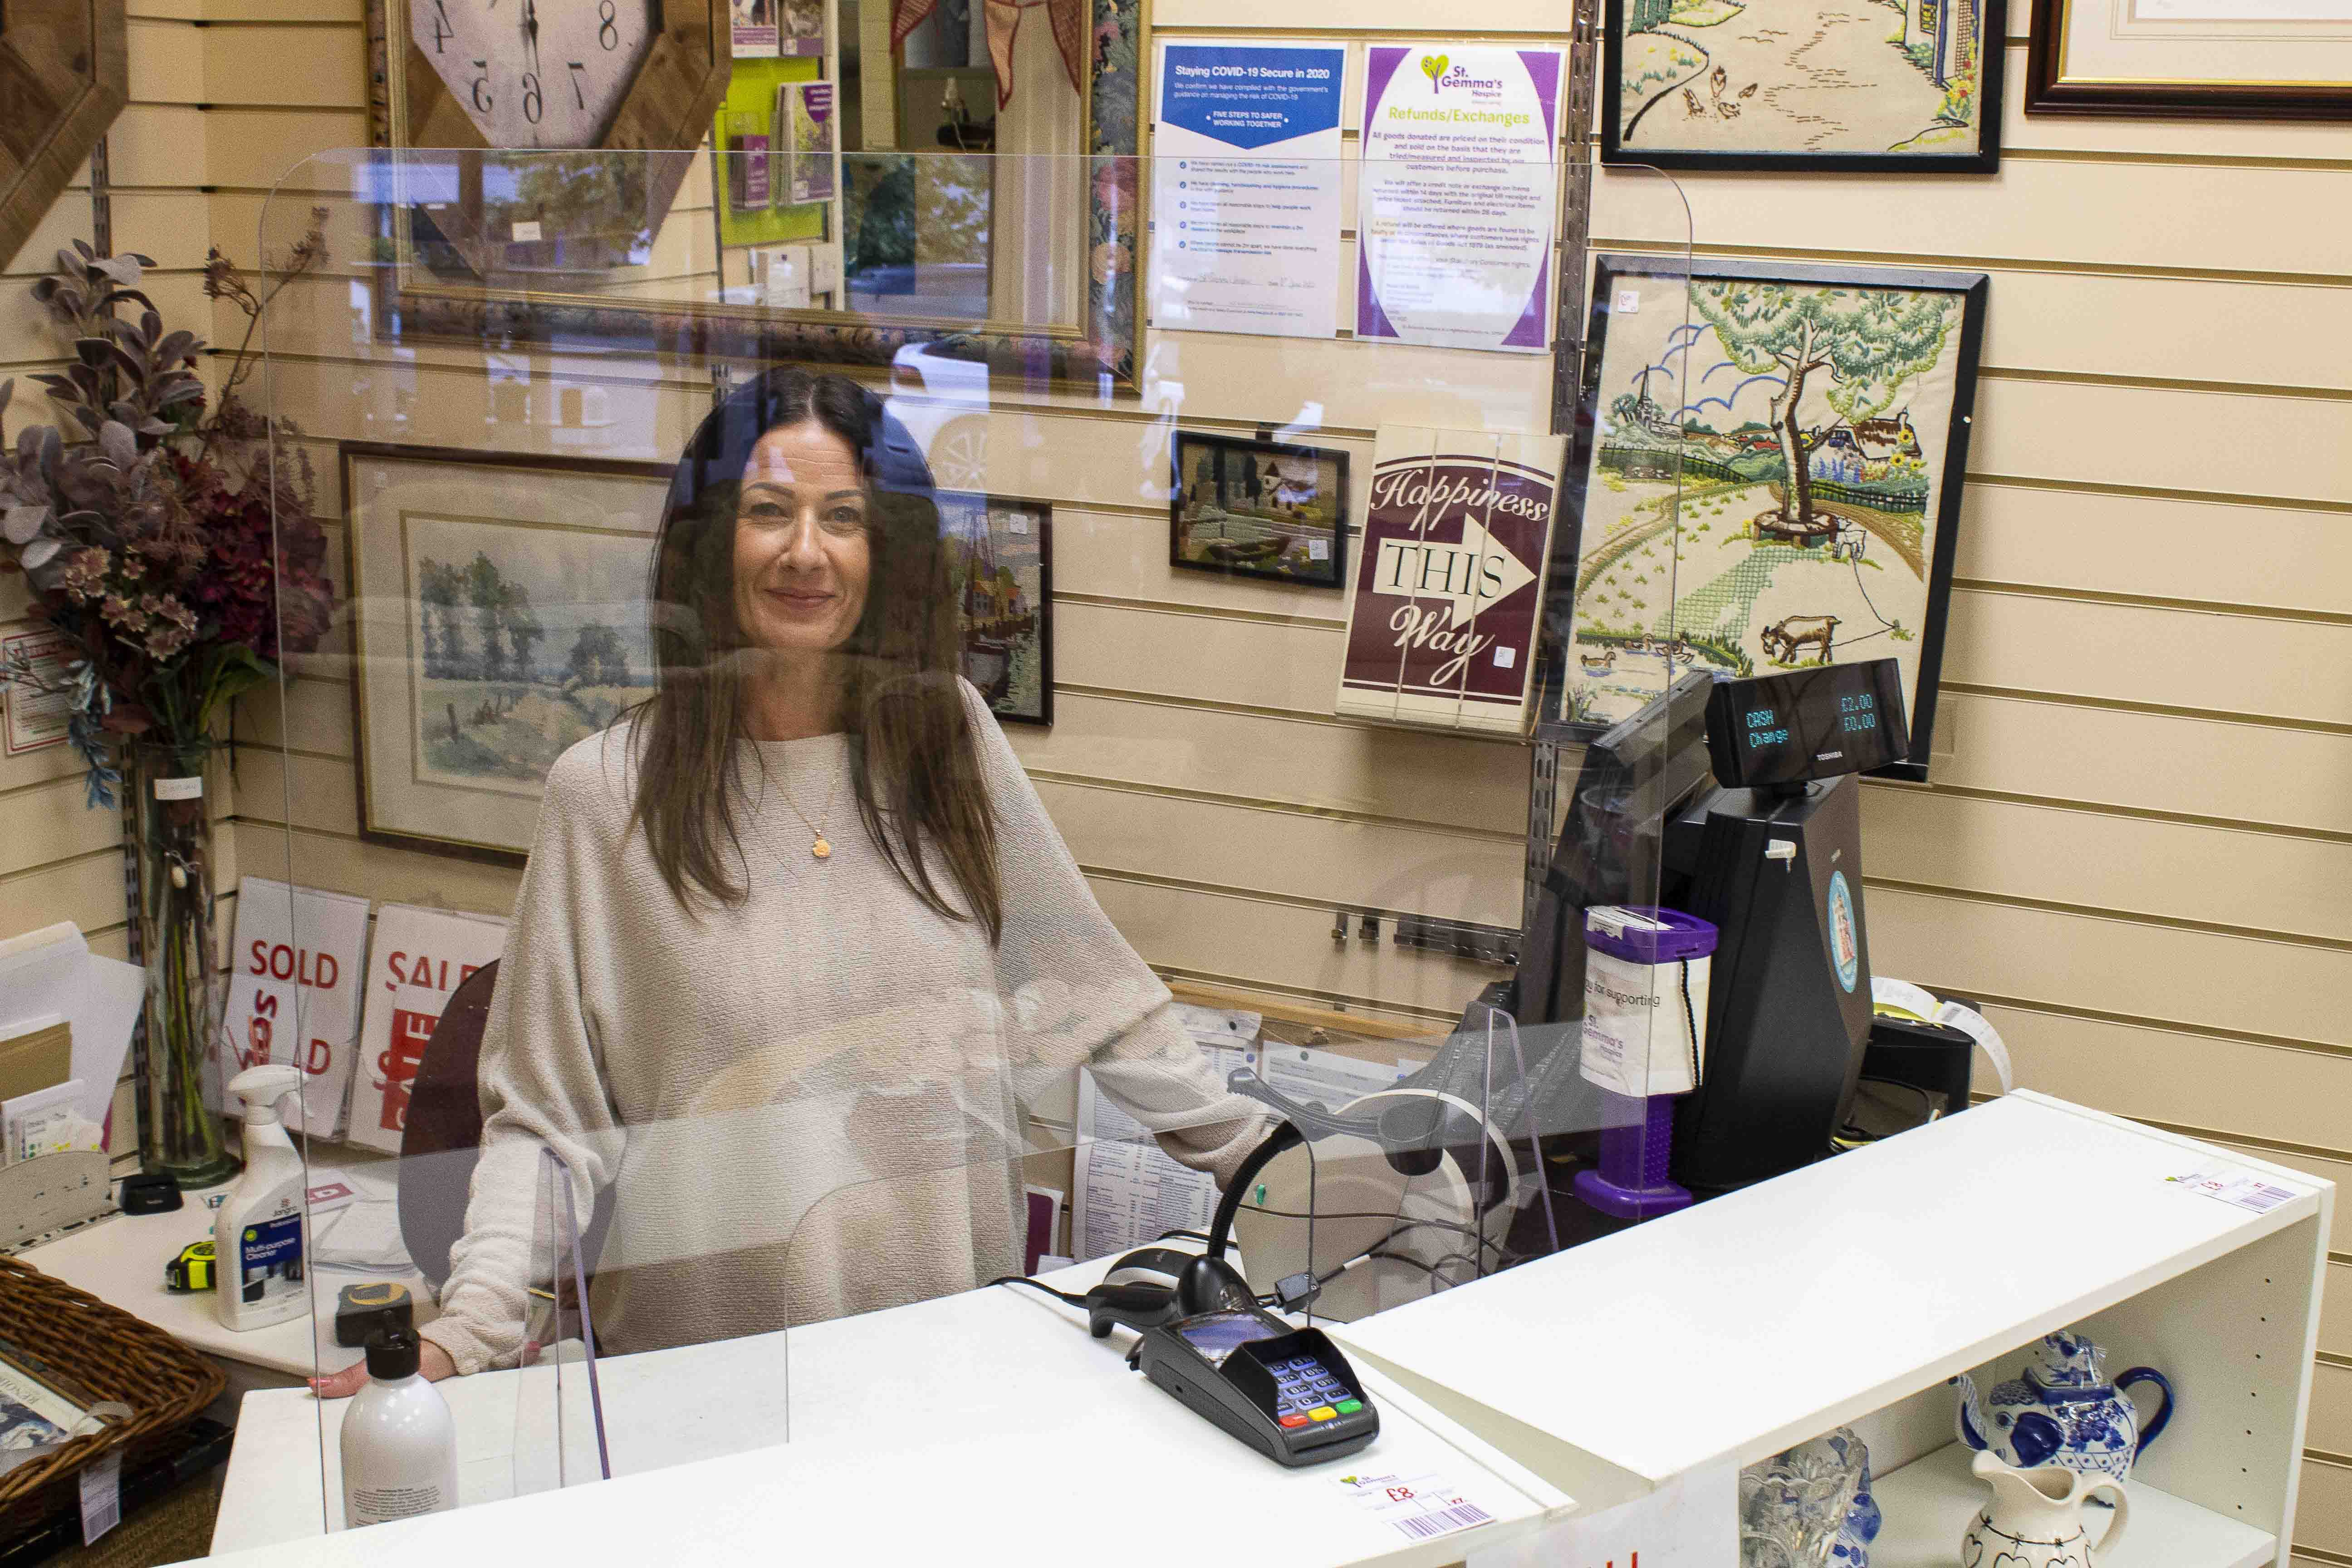 Smiling shop manager behind perspex screen at till